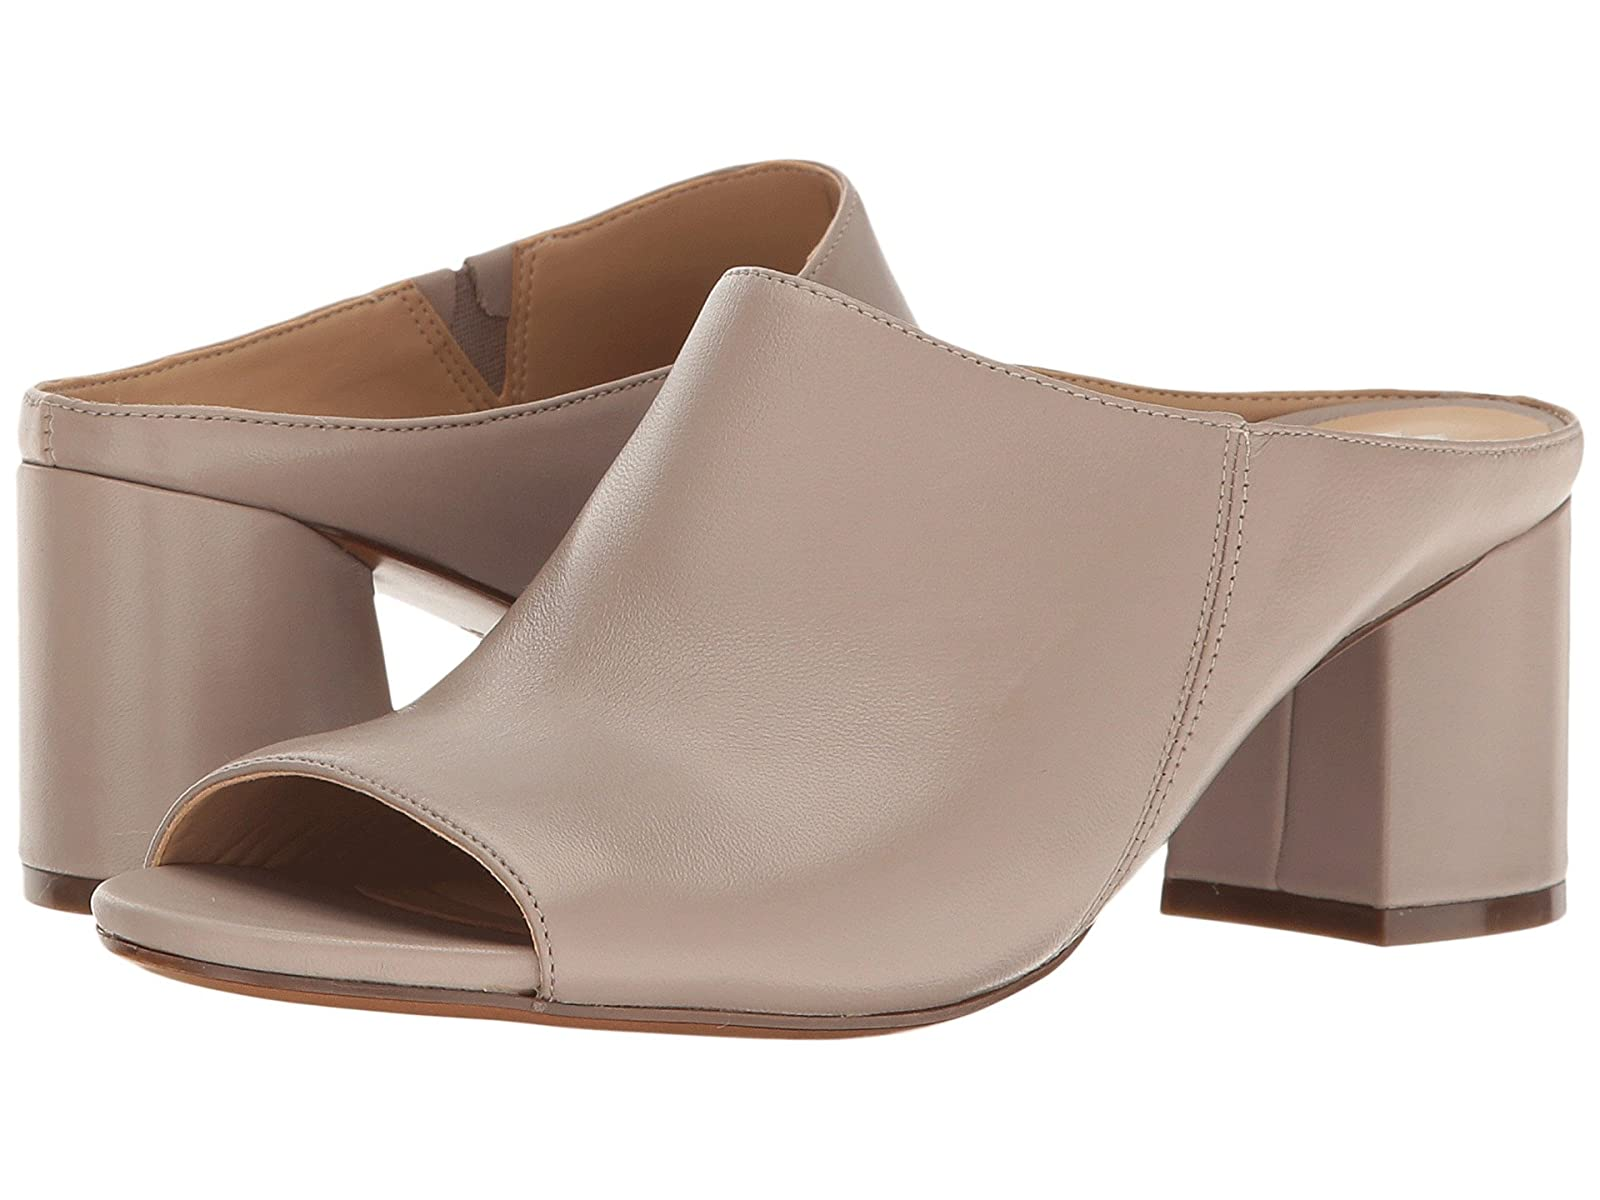 Naturalizer CyprineCheap and distinctive eye-catching shoes